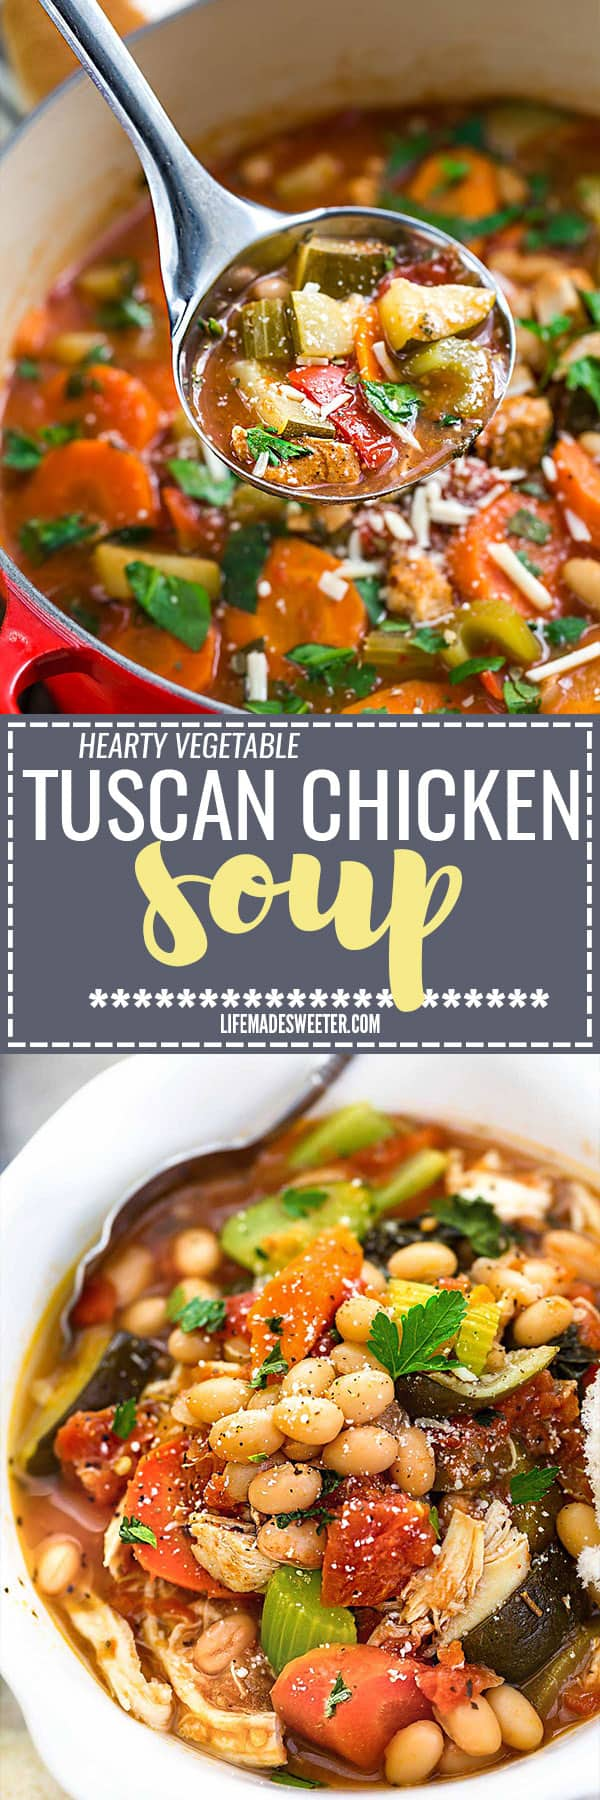 Hearty Vegetable Tuscan Chicken Soup makes the perfect comforting meal for busy weeknights. Best of all, it's so easy to make with just 15 minutes of prep time and it's full of hearty vegetables, white beans and chicken.